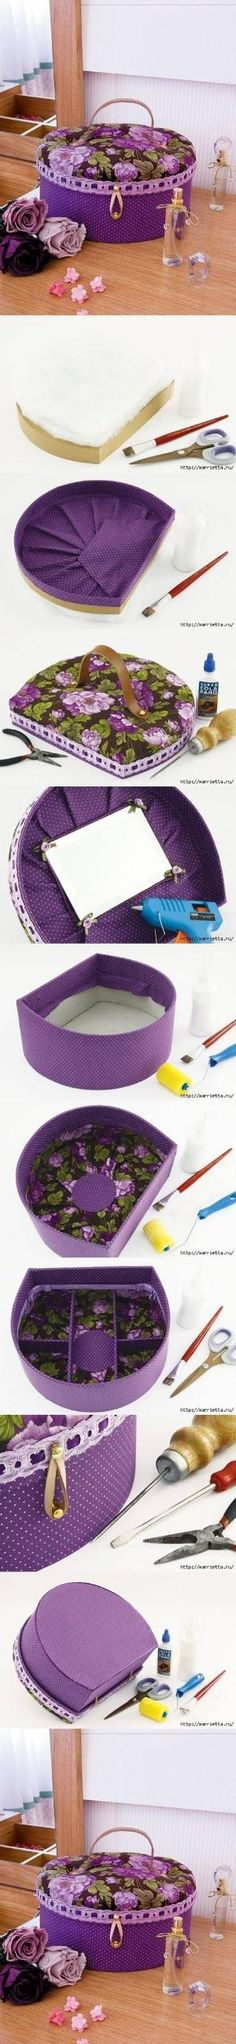 DIY Cute Makeup Box by Christin Moon